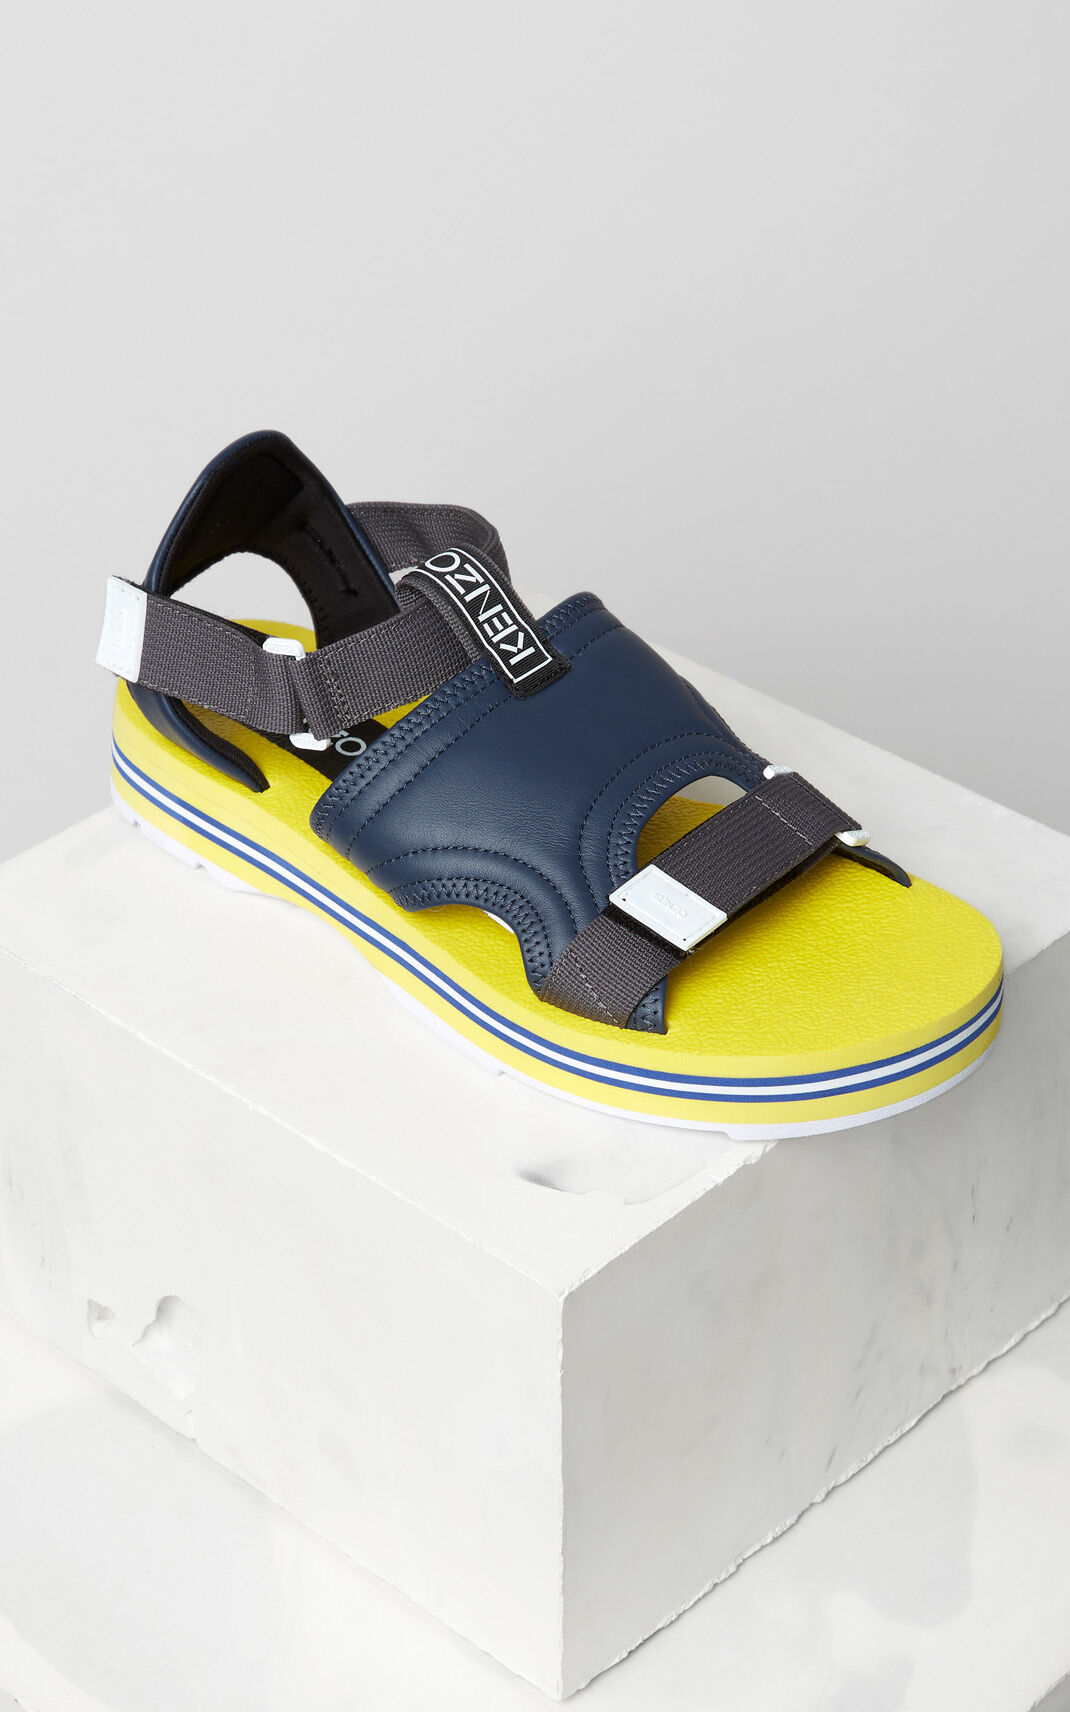 NAVY BLUE Papaya sandals for men KENZO